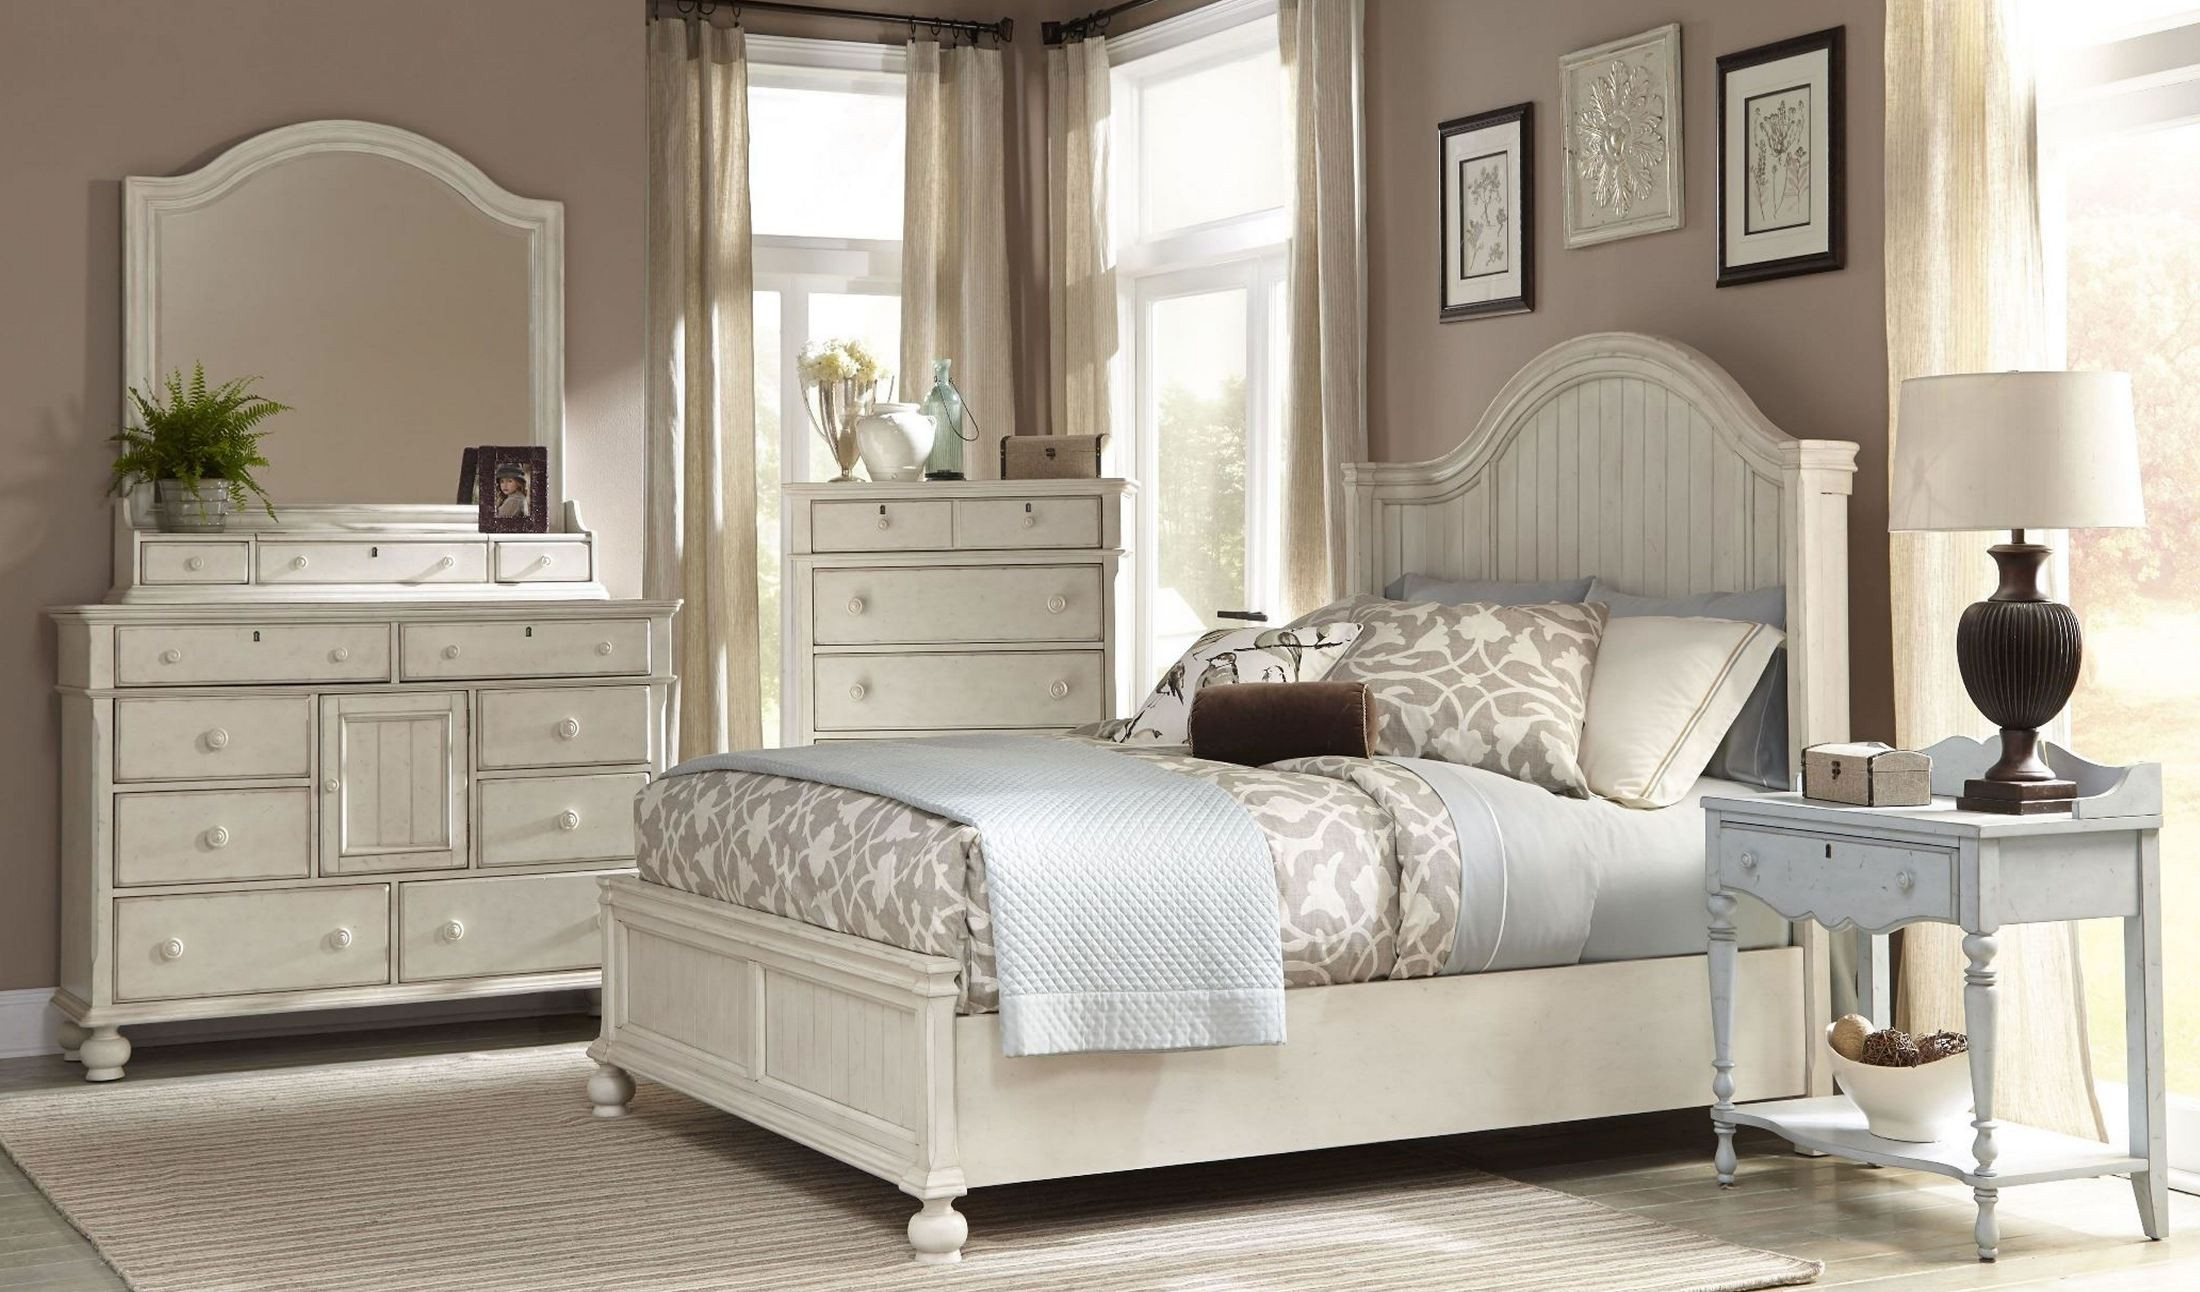 Newport Antique White Panel Bedroom Set From American Woodcrafters 3720 50 P